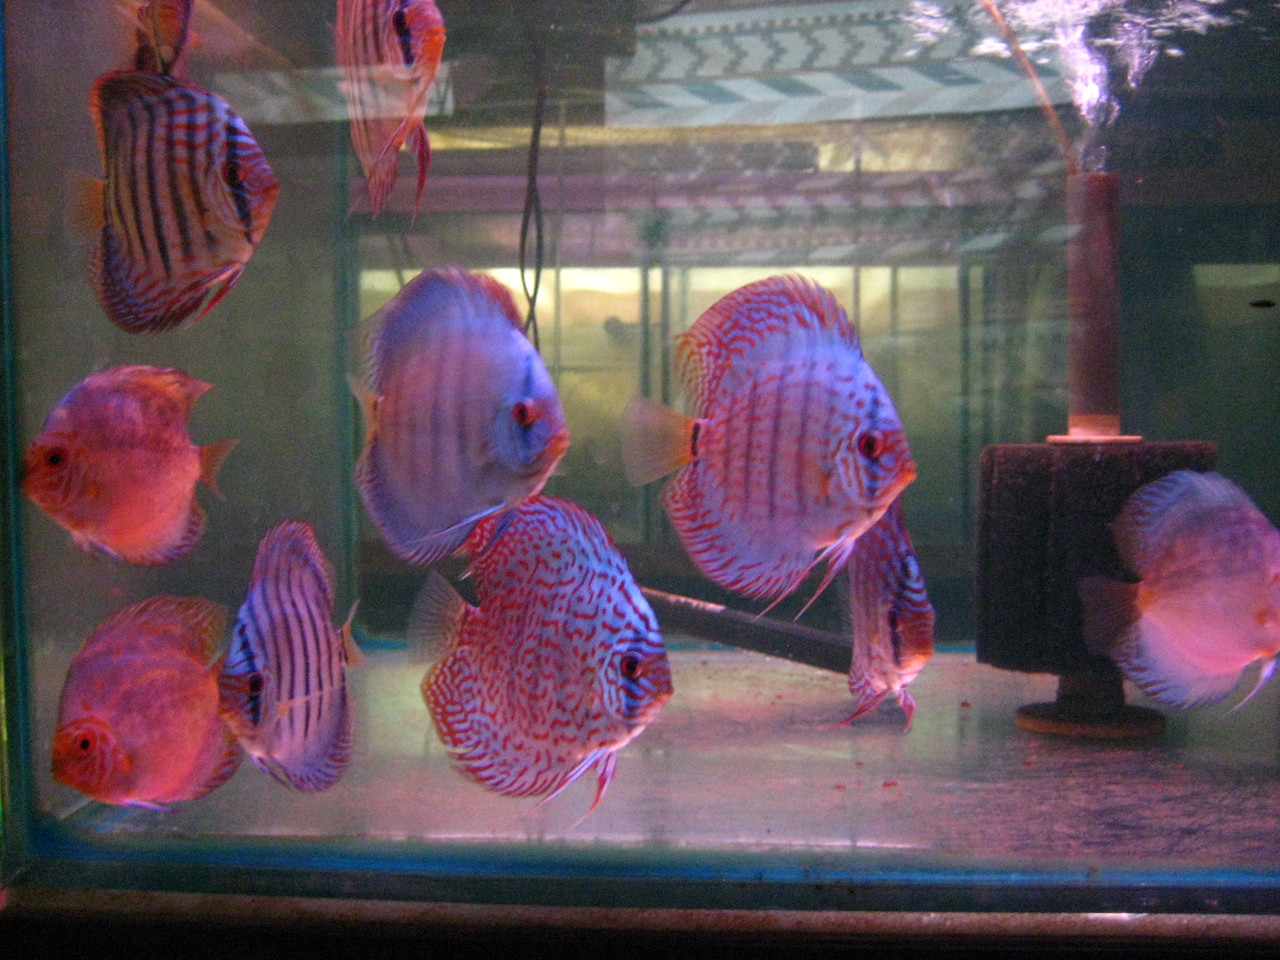 10 off discus fish sale 2 inch multi color 6 pack for Discus fish price